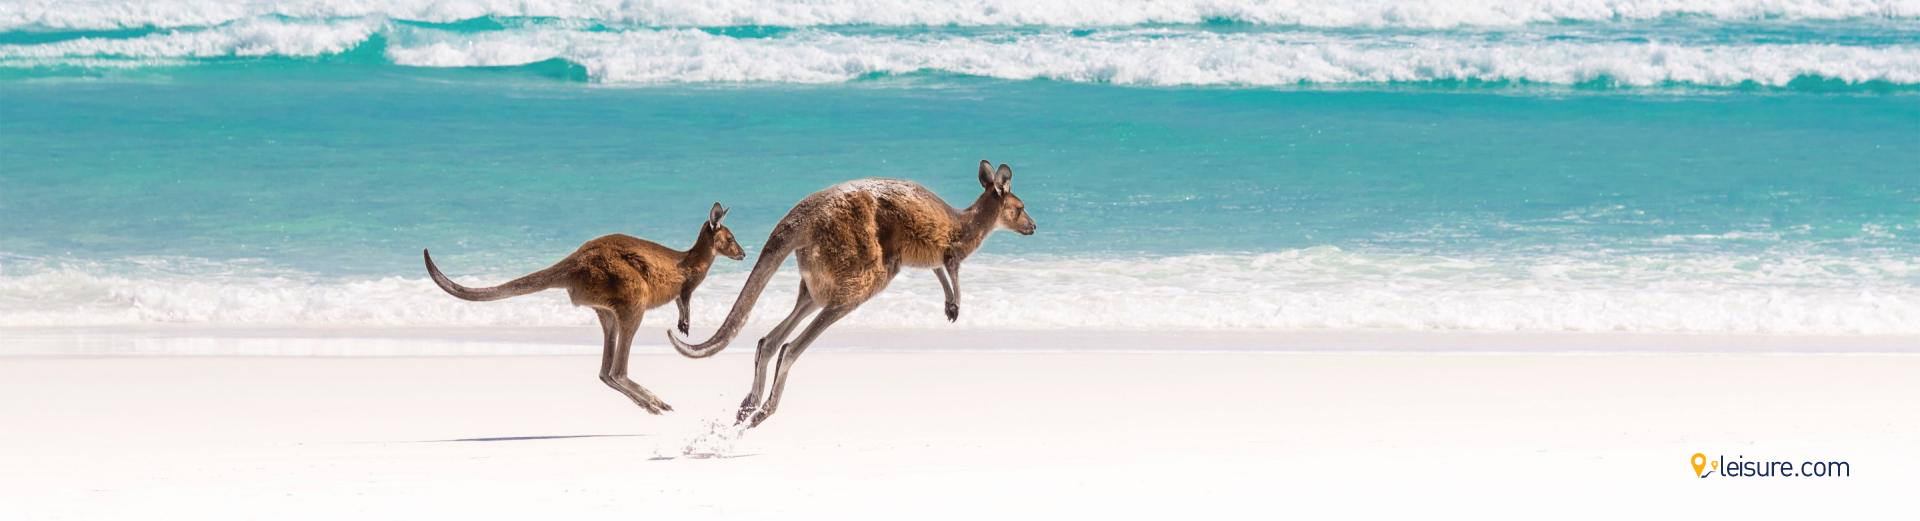 How to Spend 15 Days in Australia Tour - Australia Trip Itinerary